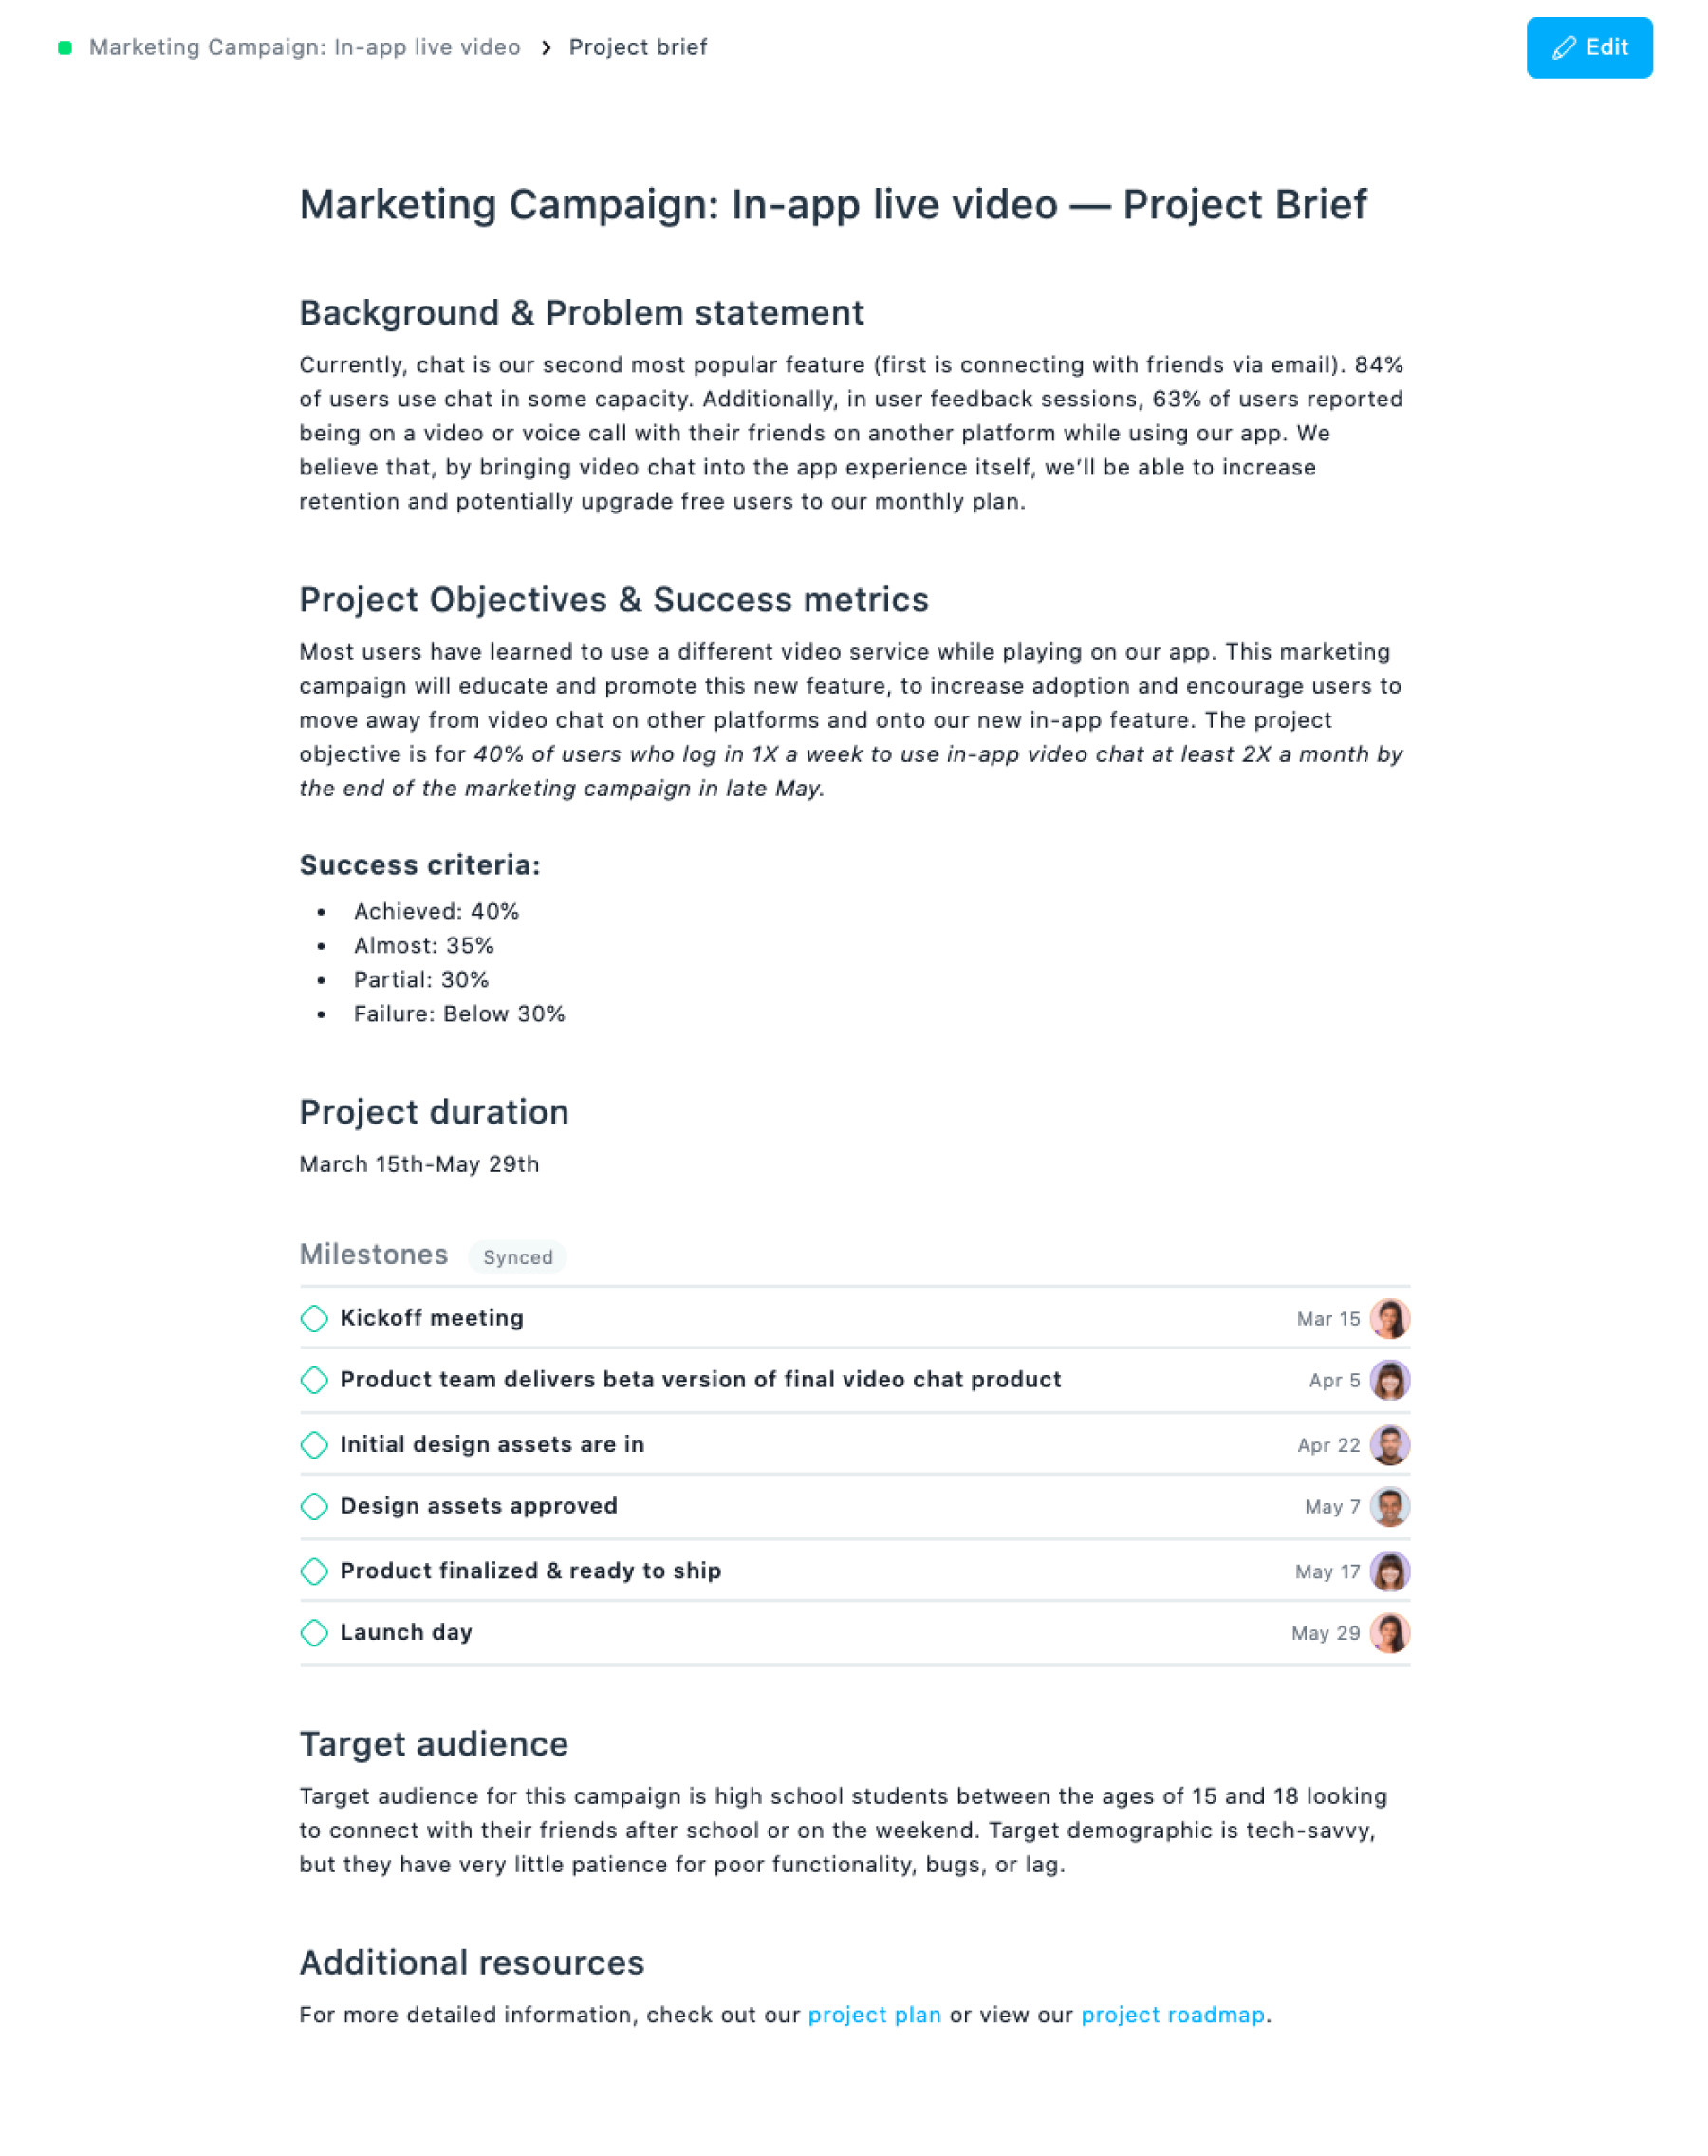 Example project brief in Asana